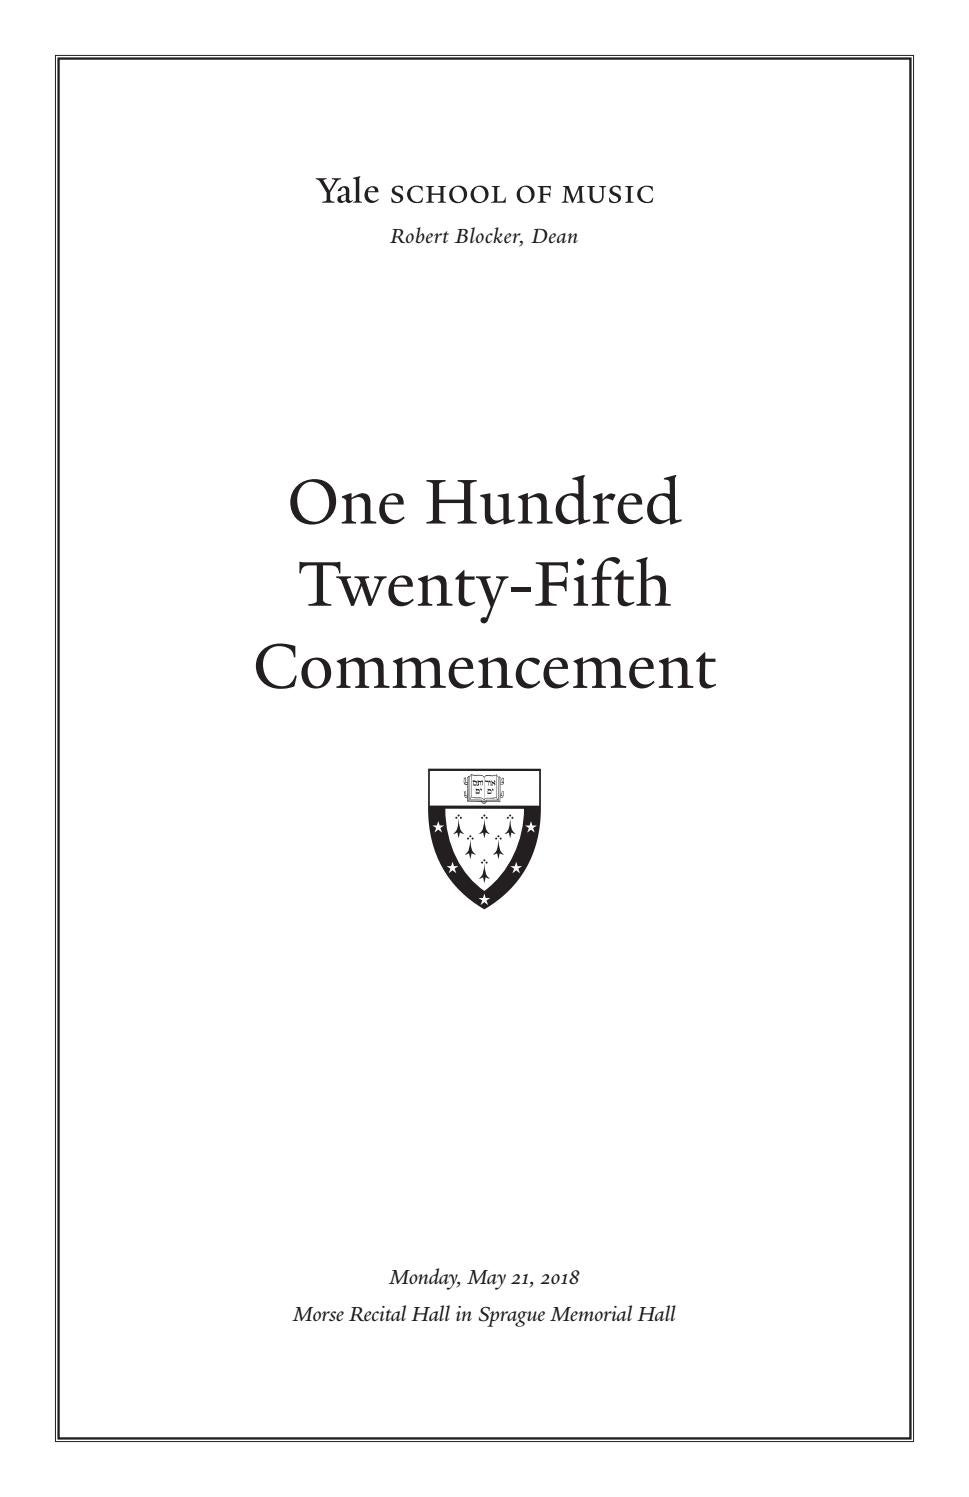 YSM Commencement Ceremony 2018 by Yale School of Music - issuu